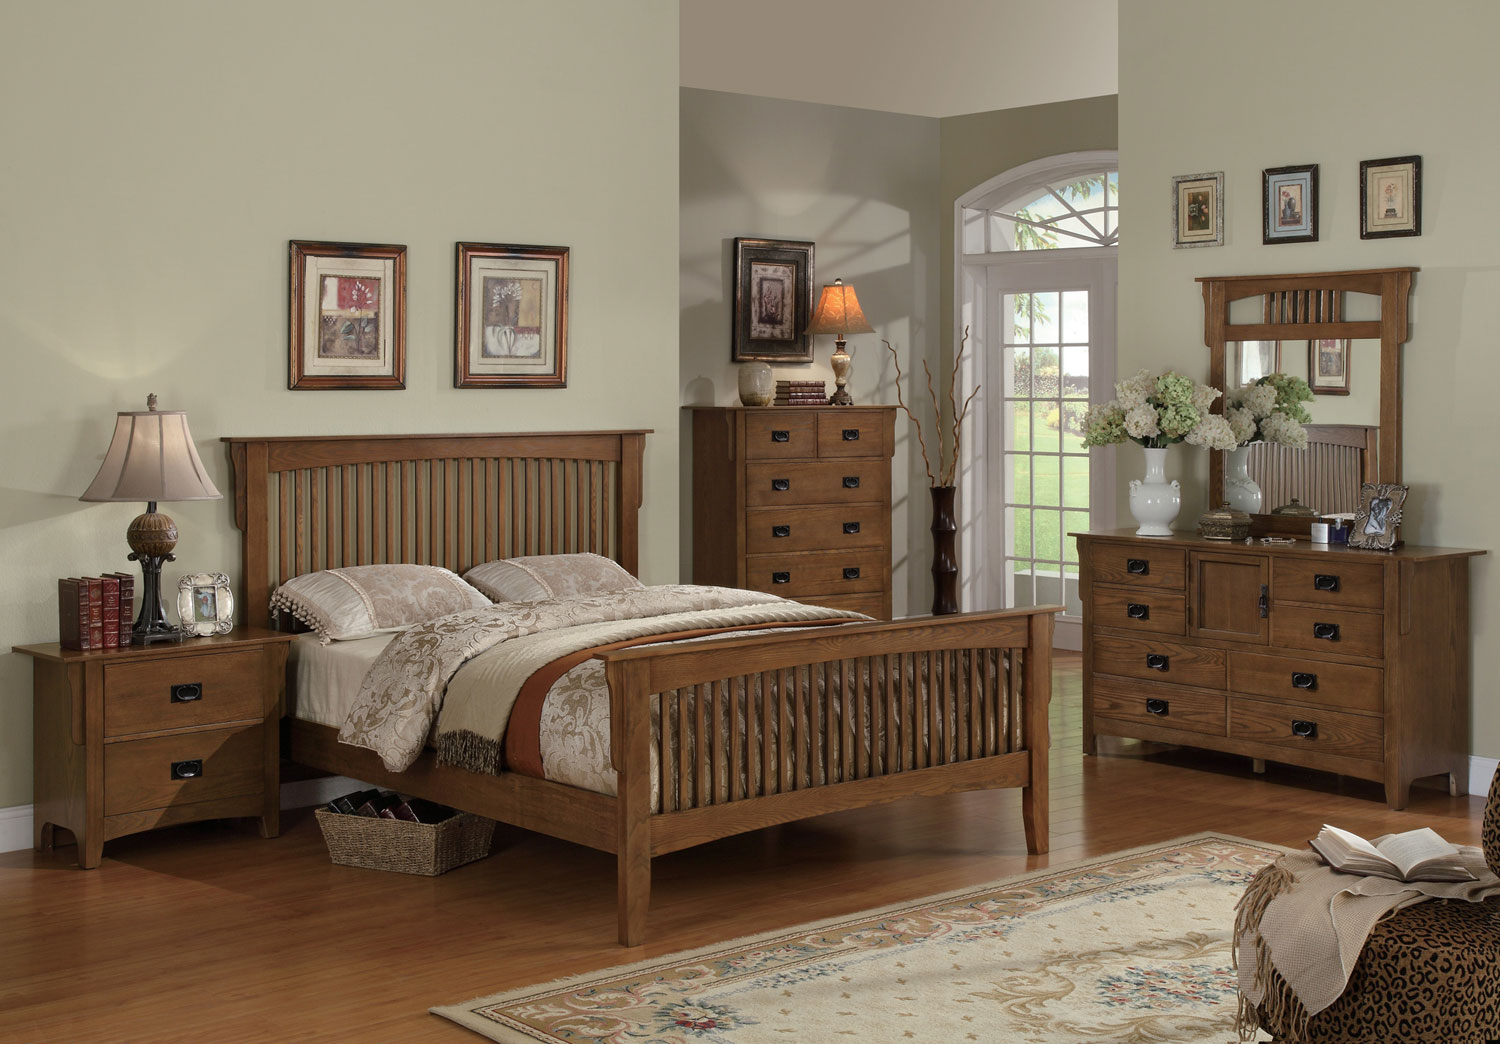 Coaster Georgia Mission Bedroom Set - Medium Oak